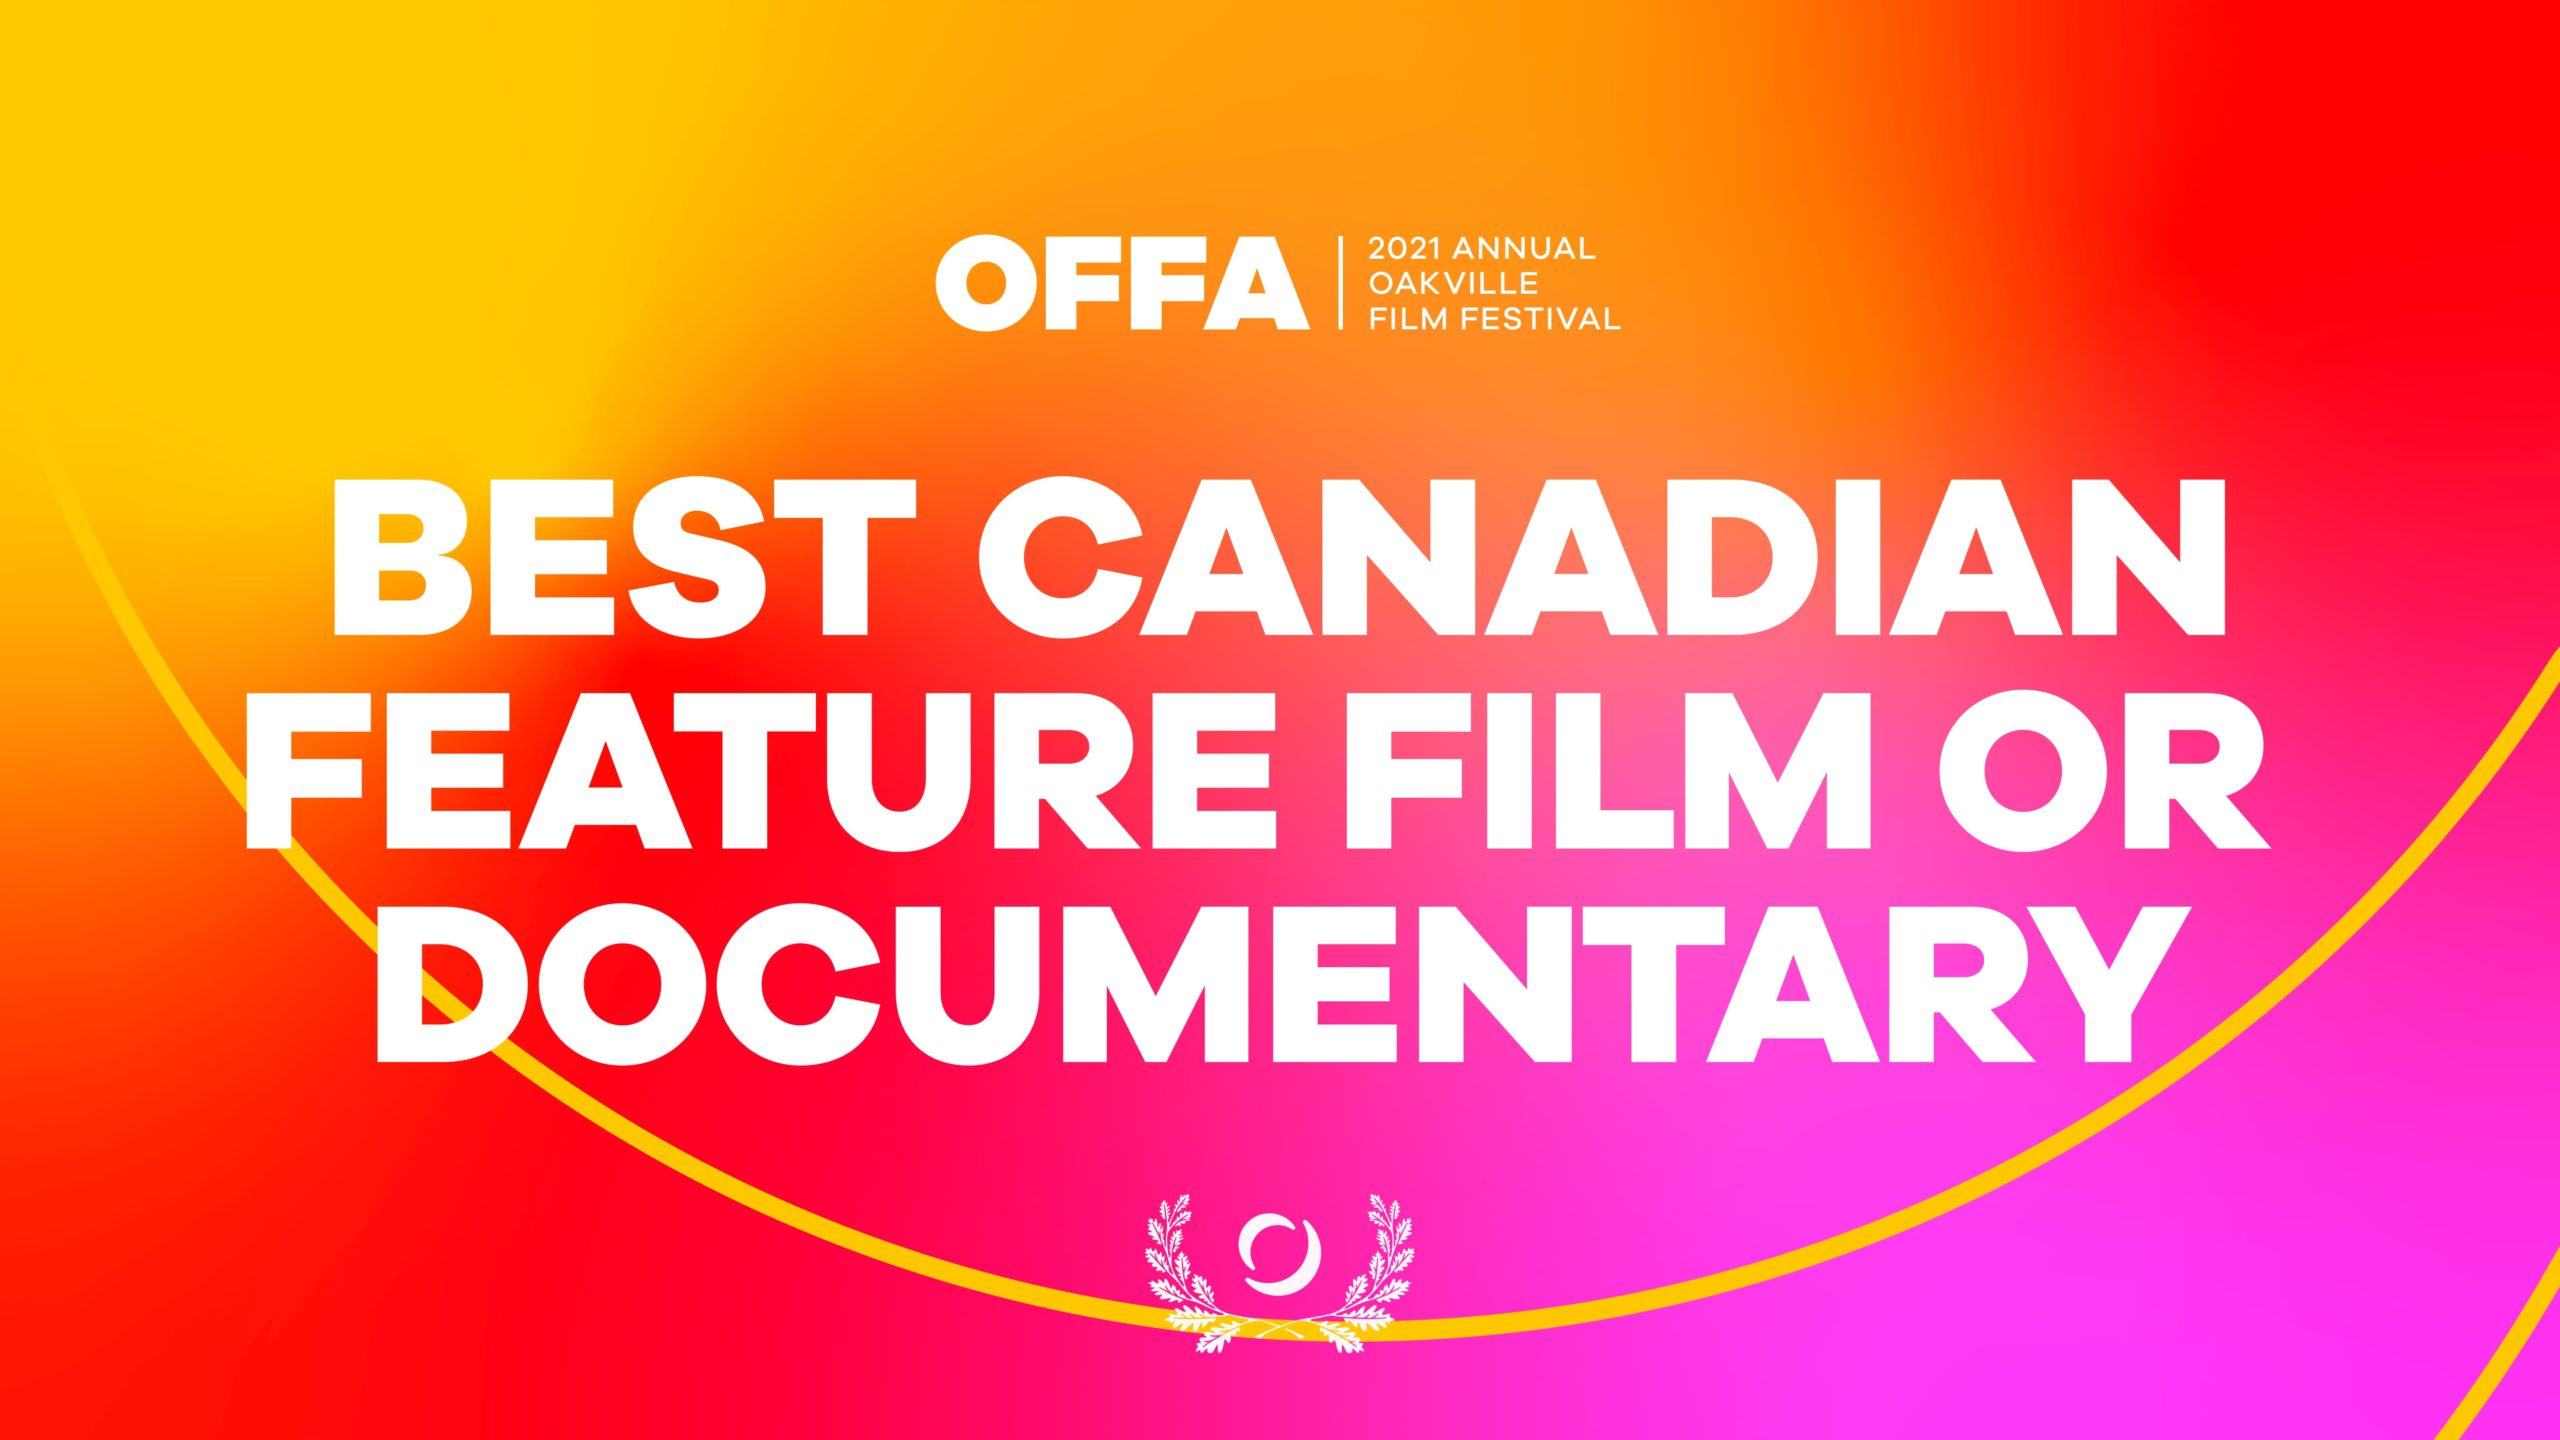 OFFA 2021 Best Canadian Feature Film or Documentary